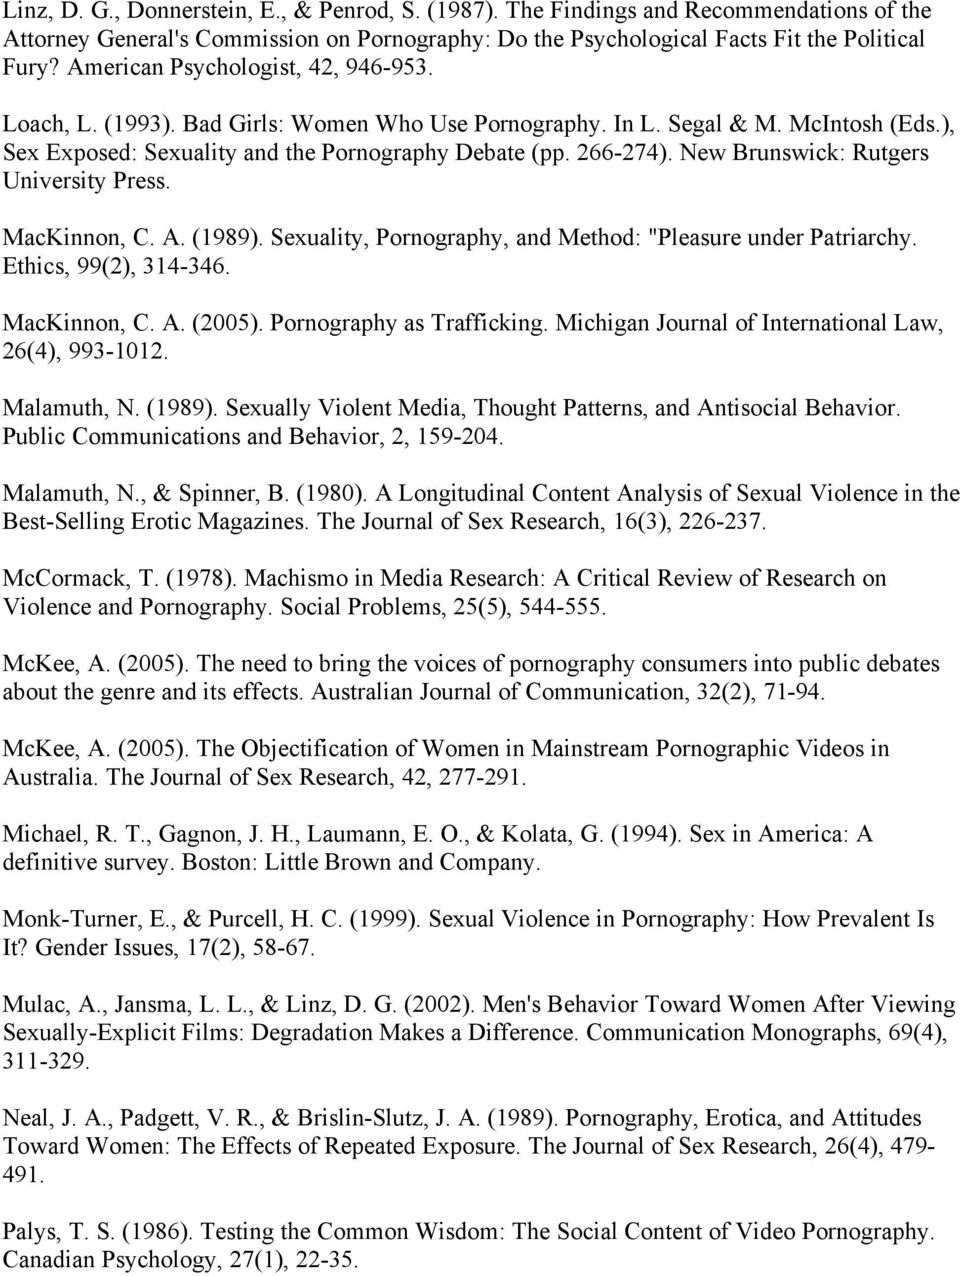 "New Brunswick: Rutgers University MacKinnon, C. A. (1989). Sexuality, Pornography, and Method: ""Pleasure under Patriarchy. Ethics, 99(2), 314-346. MacKinnon, C. A. (2005). Pornography as Trafficking."